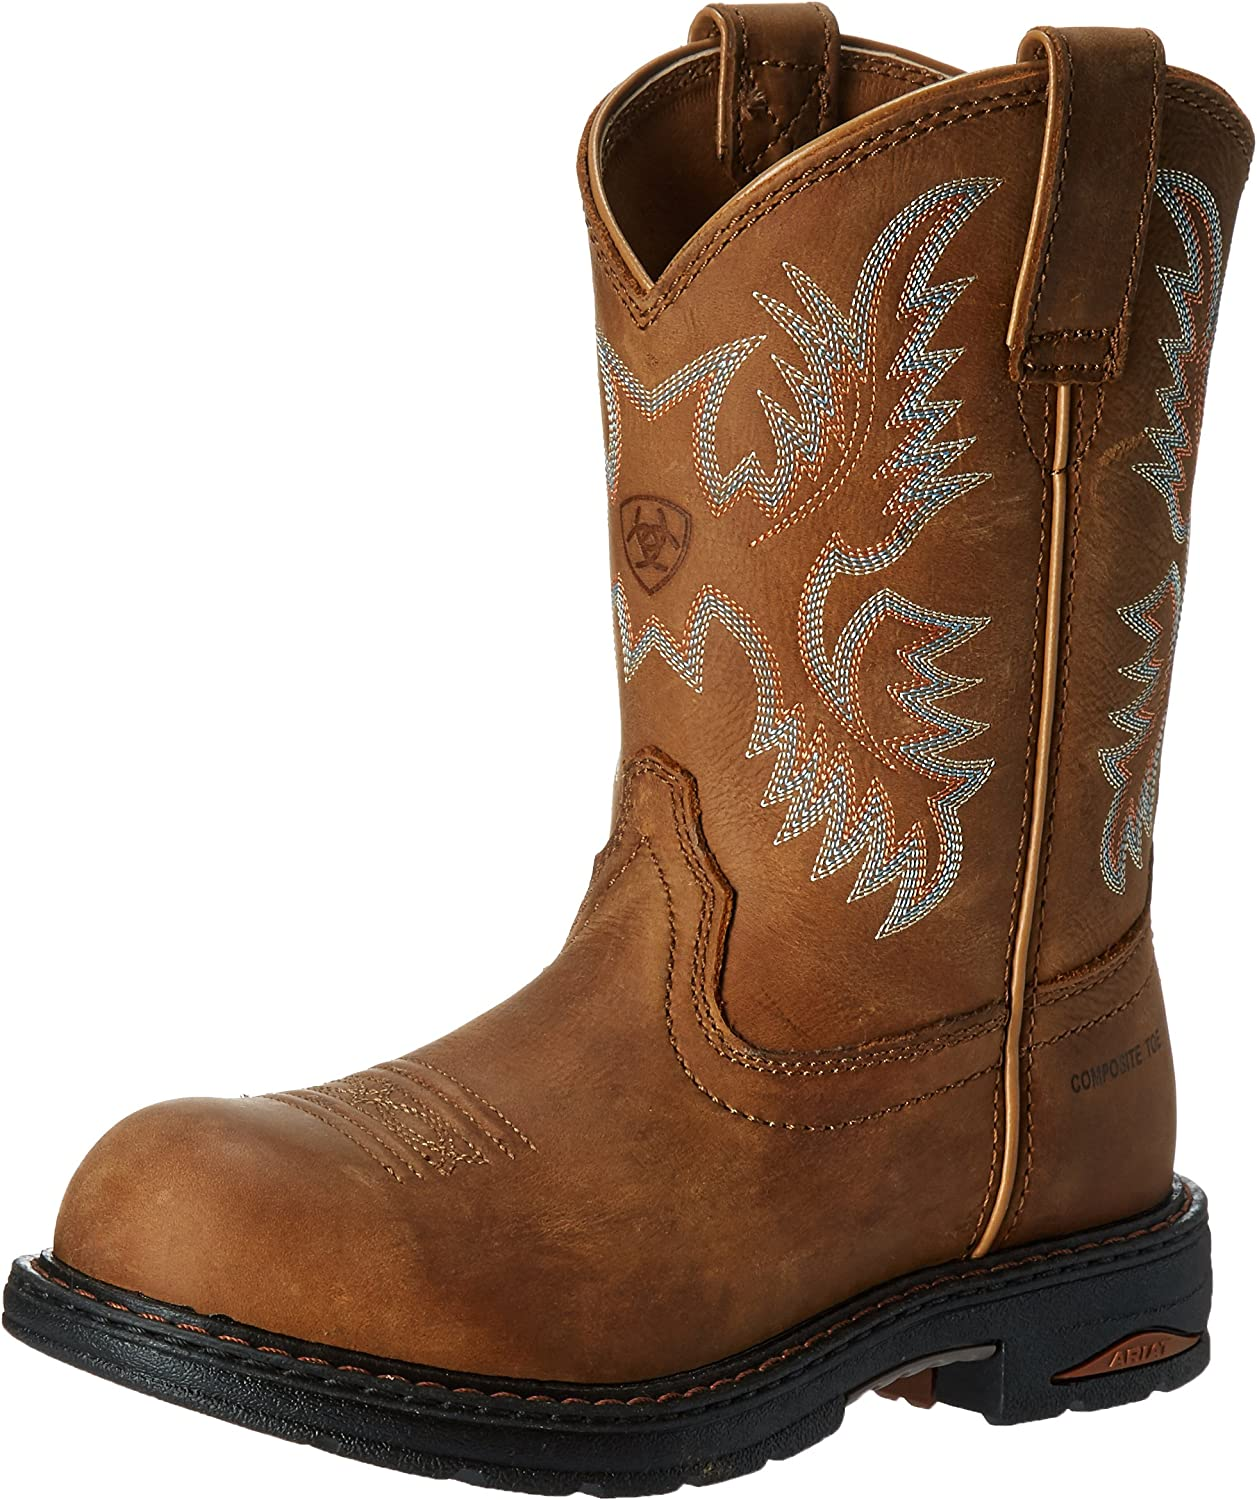 ARIAT Women's Tracey Composite Toe Work Boot